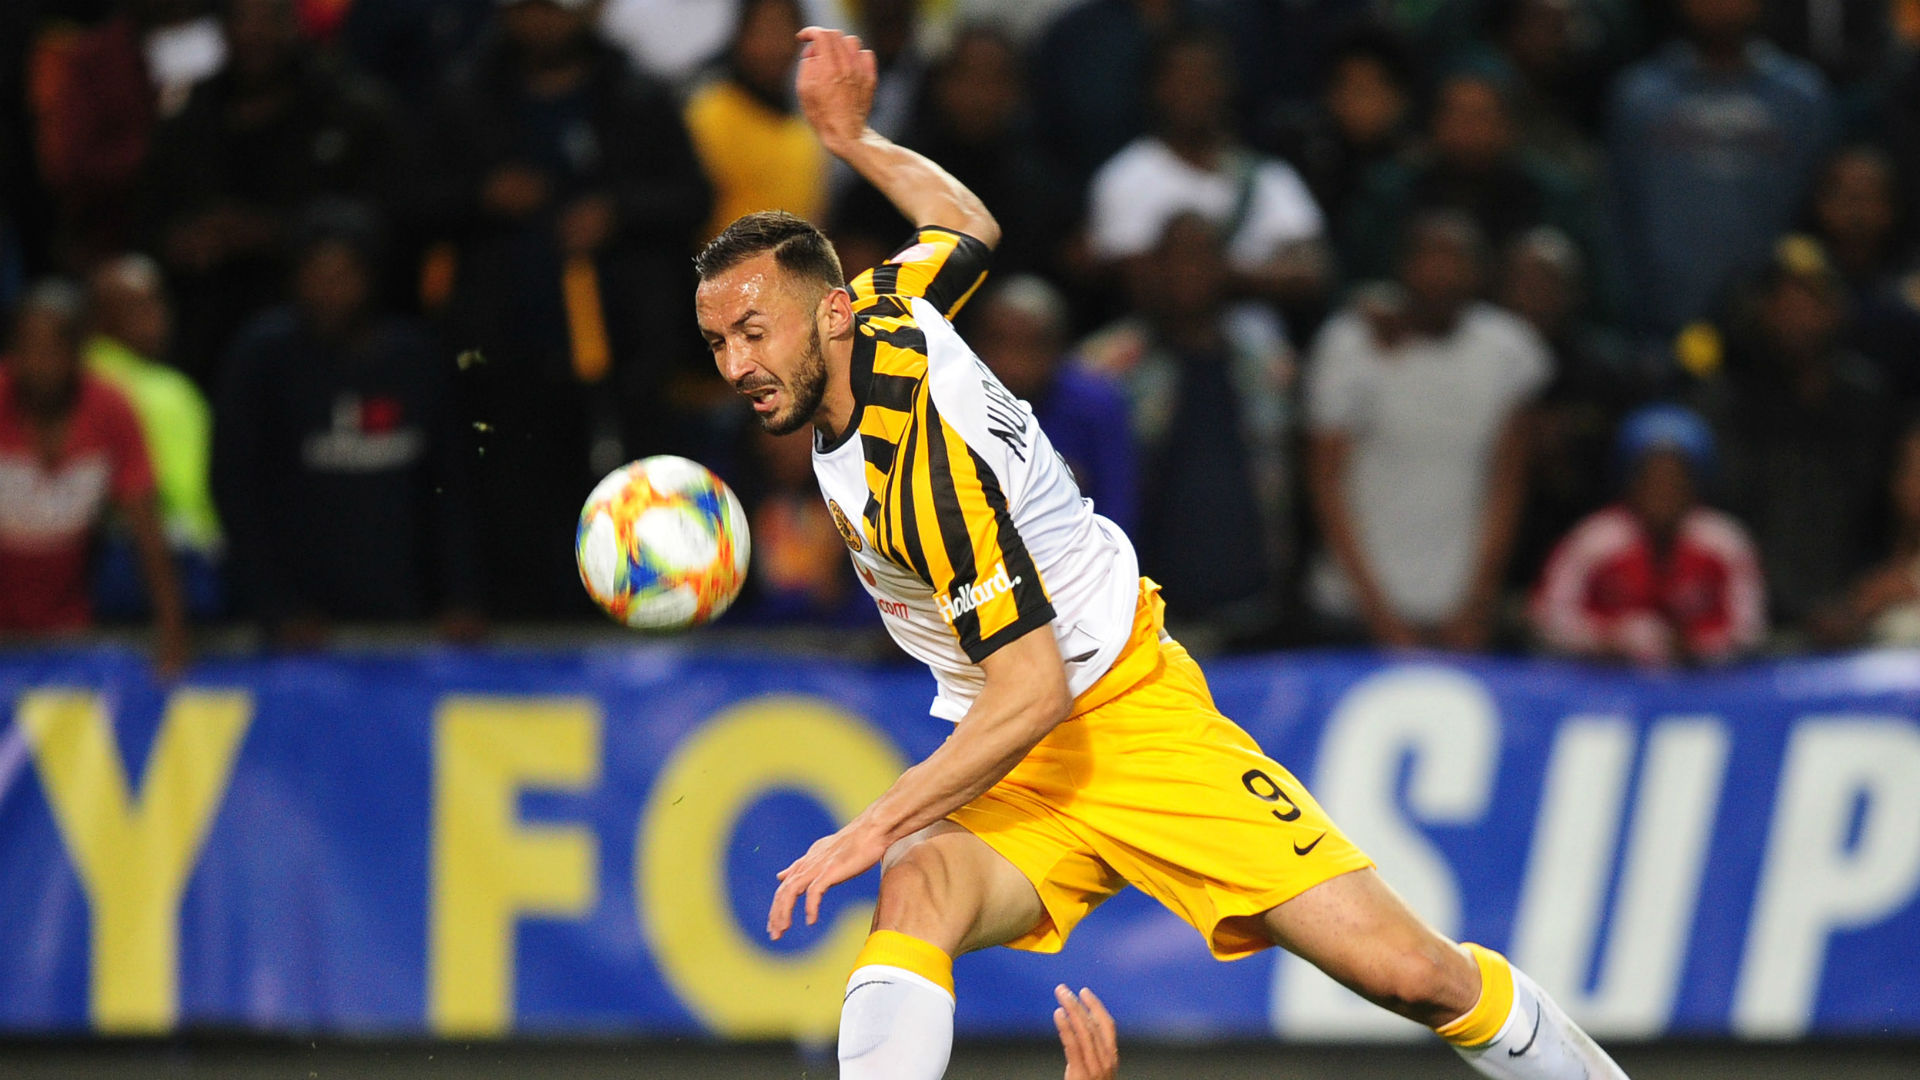 EXTRA TIME: Watch Kaizer Chiefs forward Nurkovic on scoring more than 10 goals